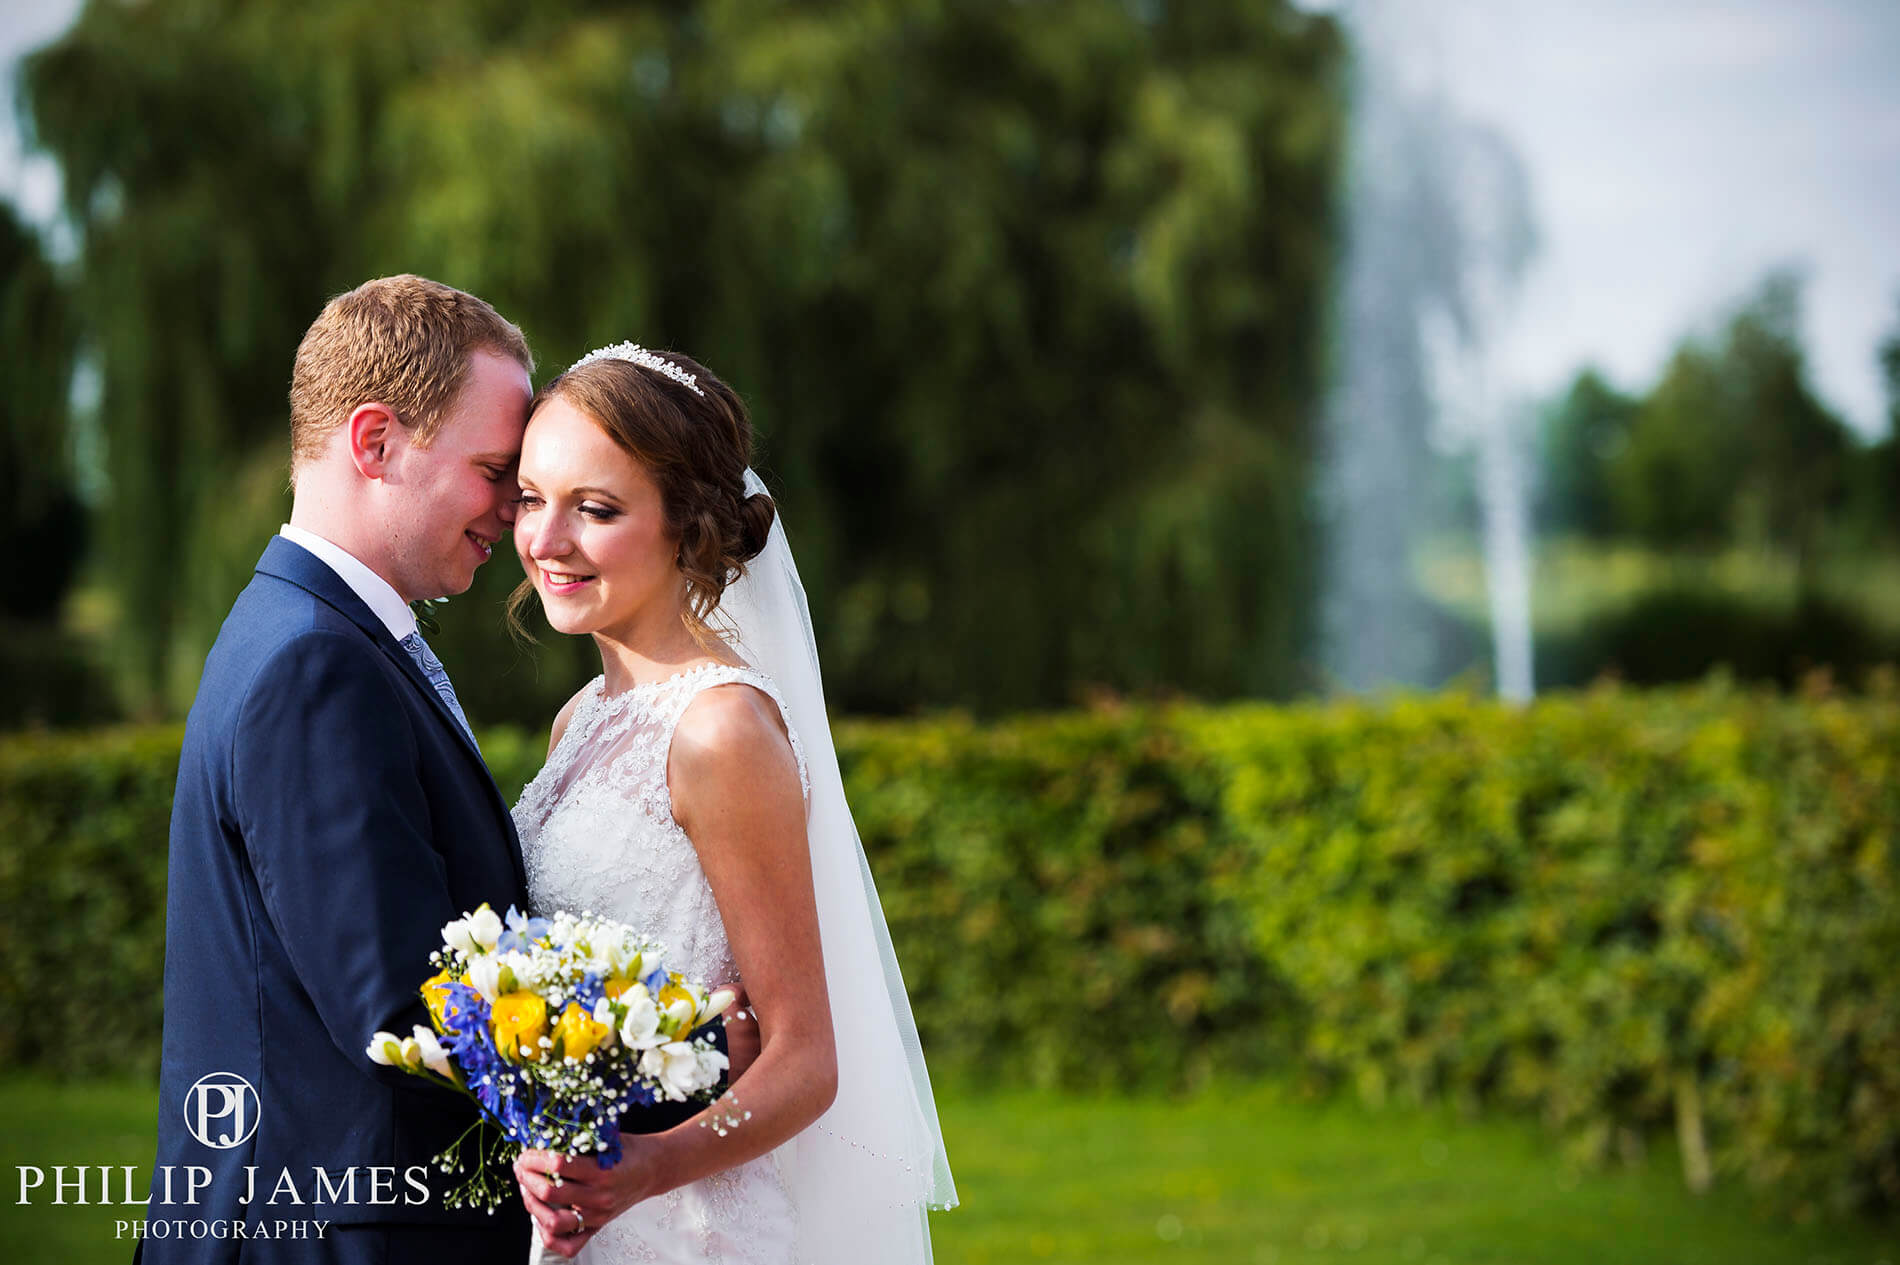 Birmingham Wedding Photographer - Philip James Photography based in Solihull (37 of 68)